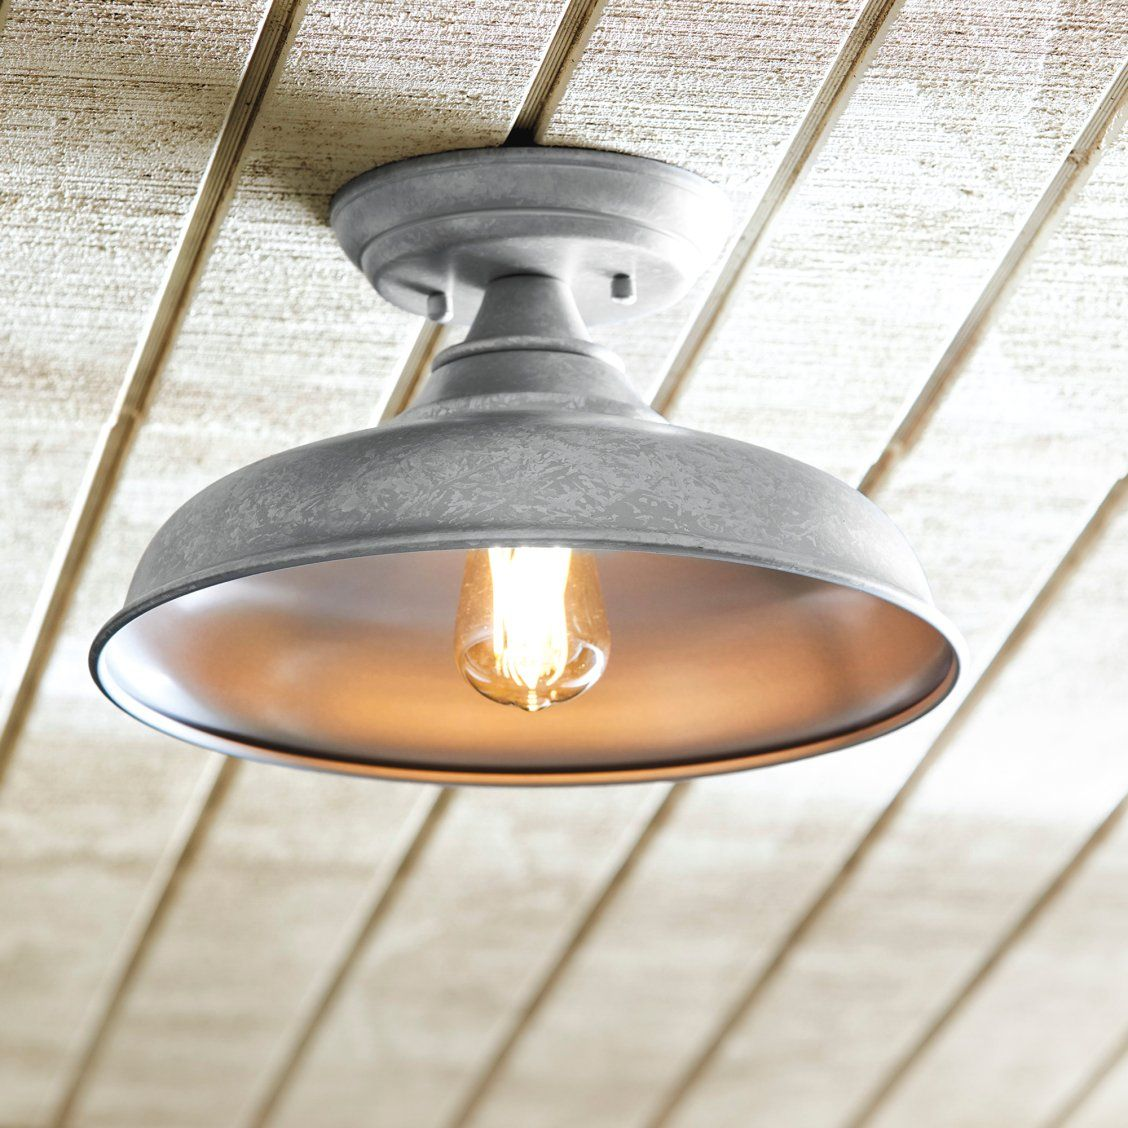 Archer Industrial Outdoor Ceiling Mount Light Fixture Ceiling